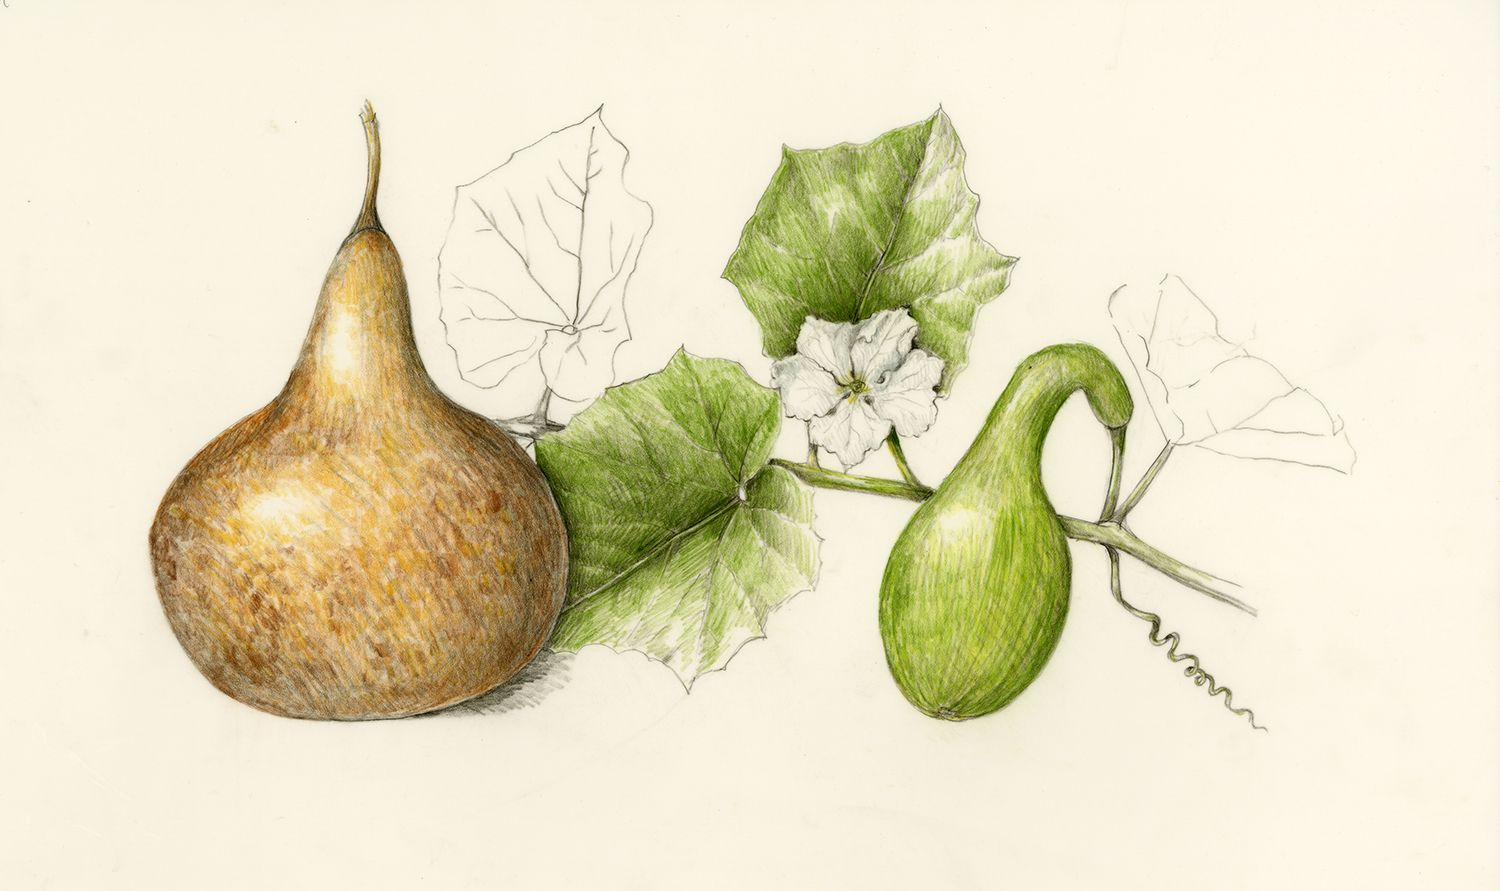 Ipu/Bottle Gourd. Lagenaria siceraria. These illustrations by Wendy Hollender appear on signage at the National Tropical Botanical Garden on Kauai to illustrate the canoe plants in their gardens.